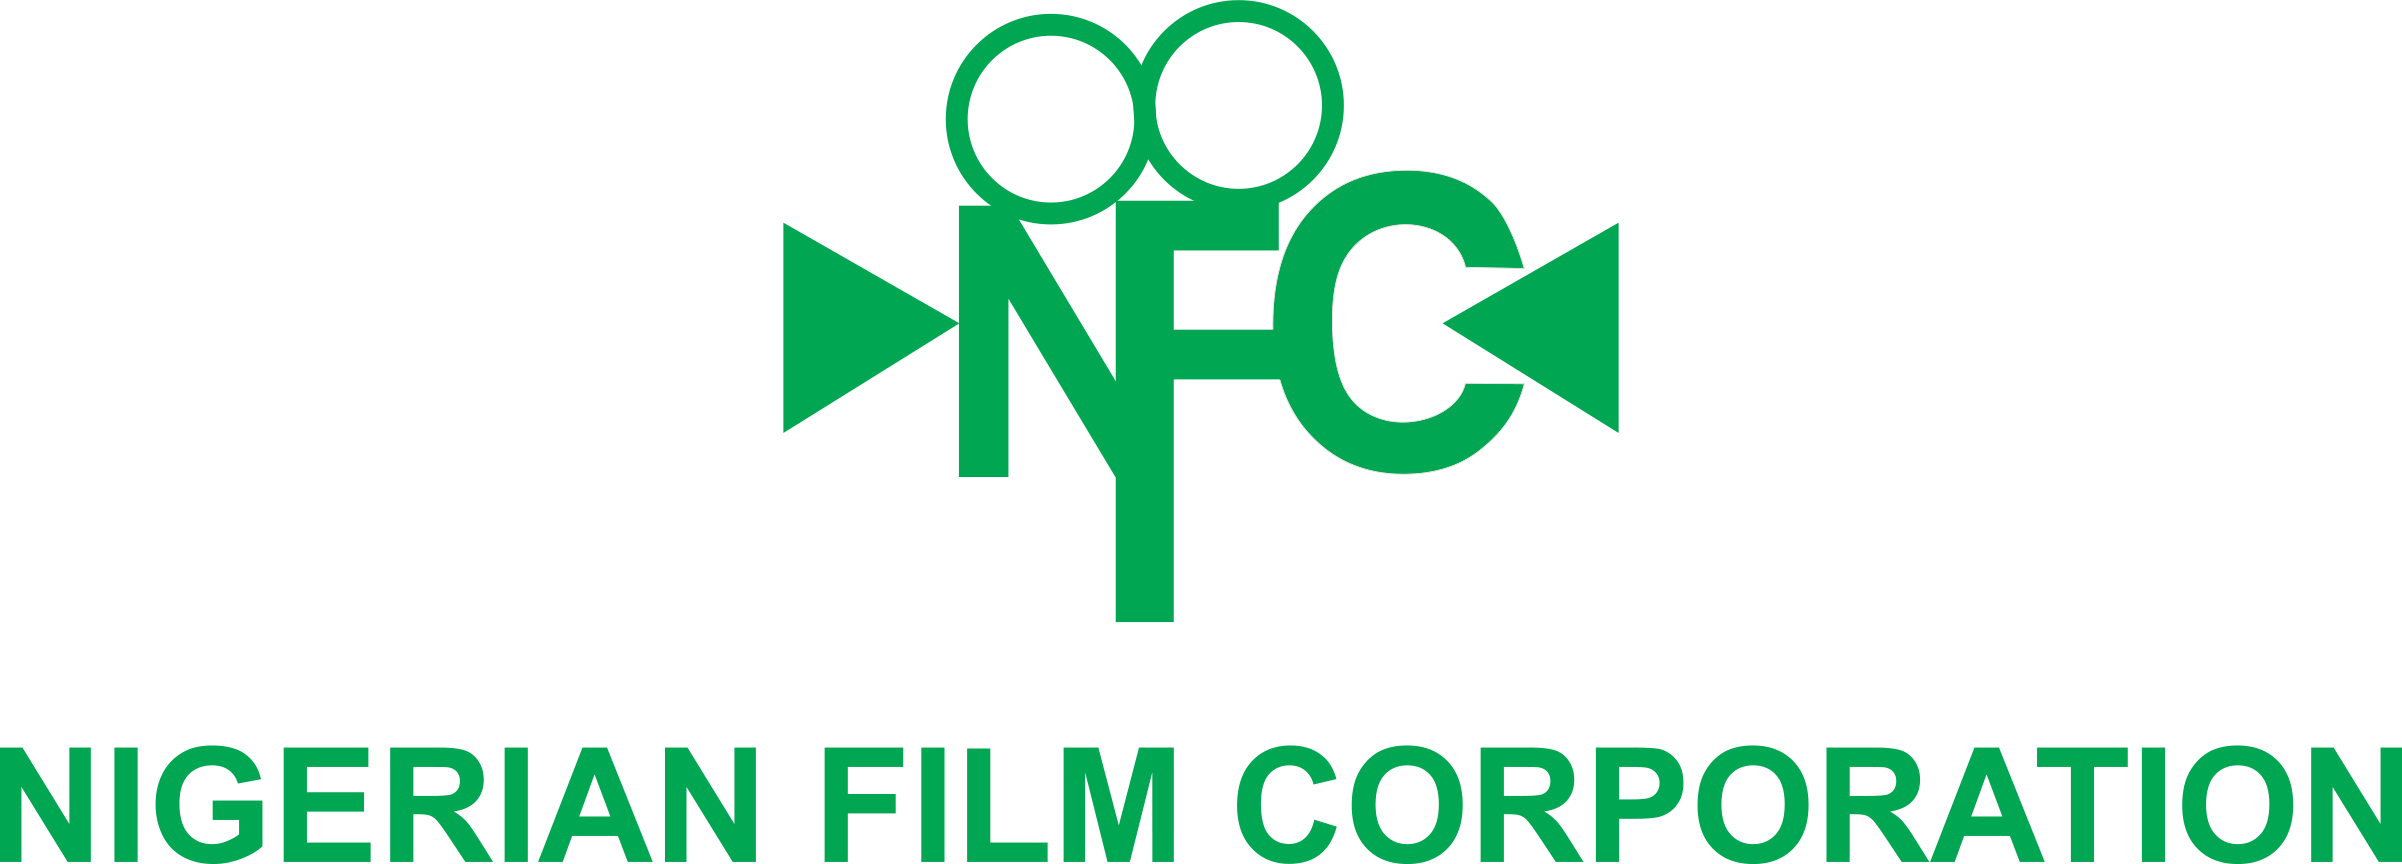 Nigerian Film Corporation (NFC) Essay Competition